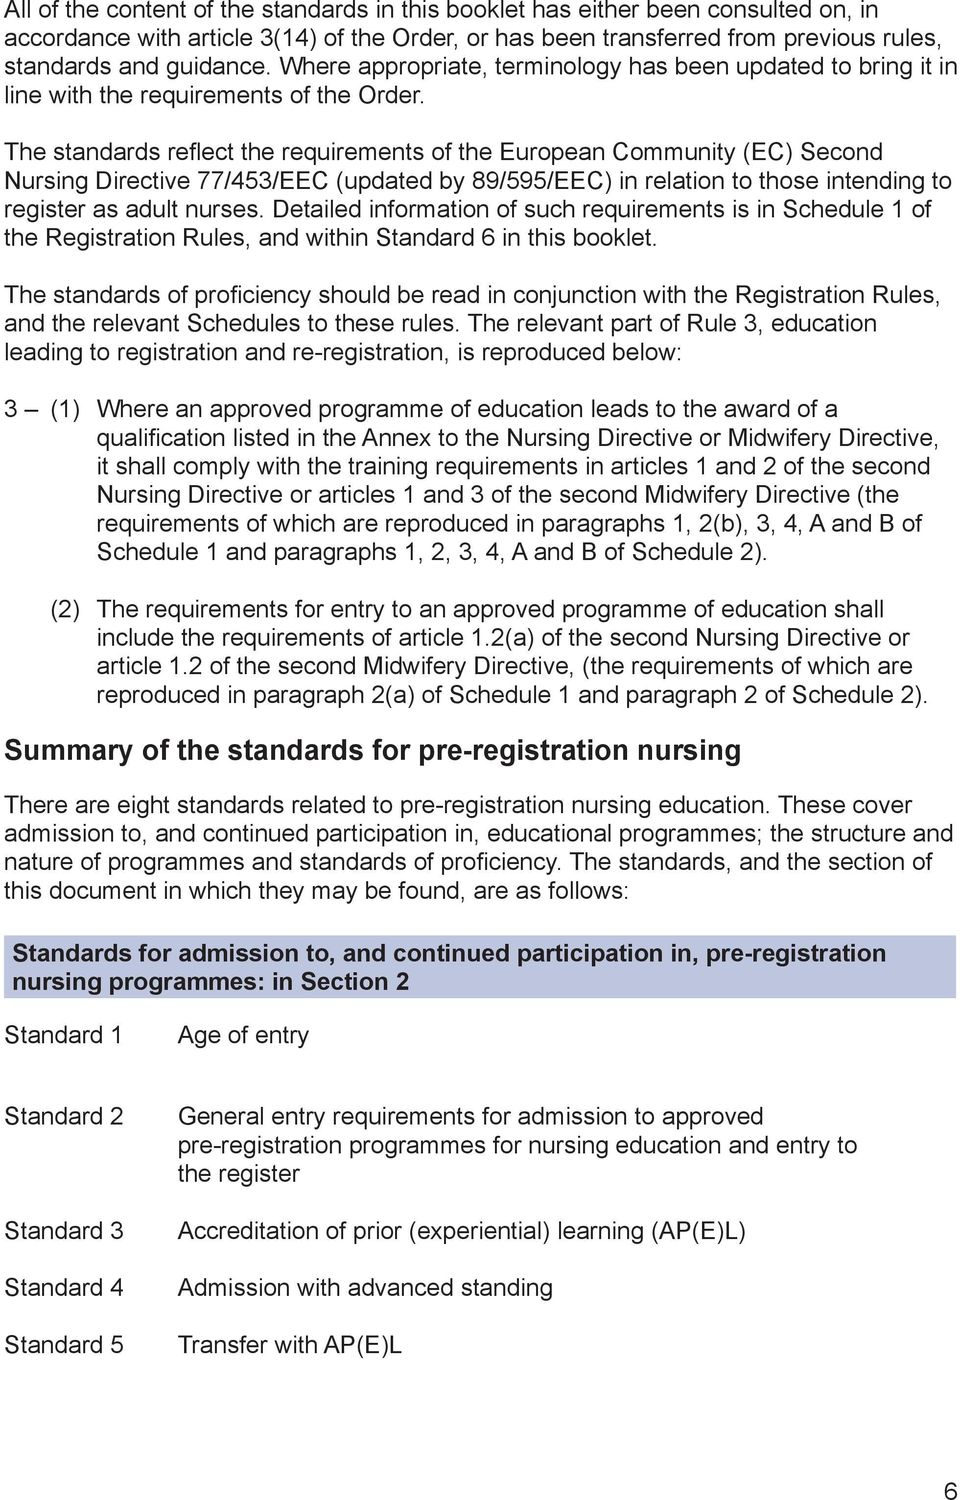 The standards reflect the requirements of the European Community (EC) Second Nursing Directive 77/453/EEC (updated by 89/595/EEC) in relation to those intending to register as adult nurses.